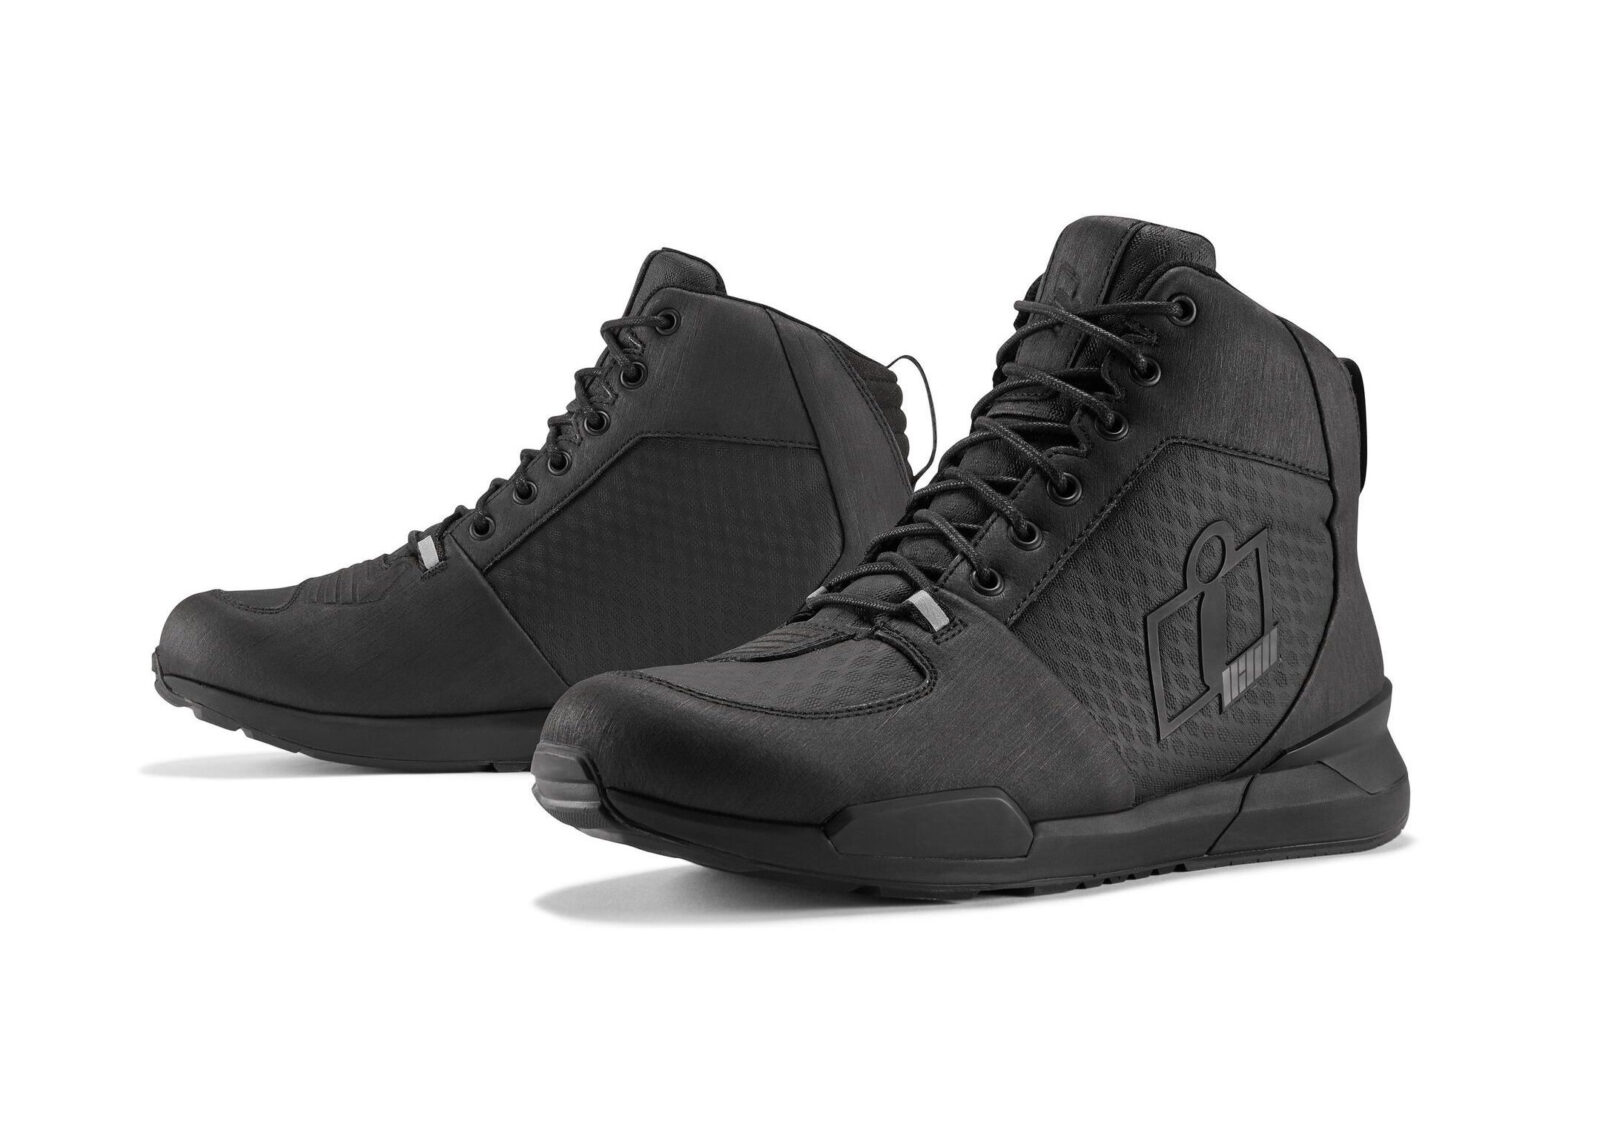 Icon Tarmac WP Boots